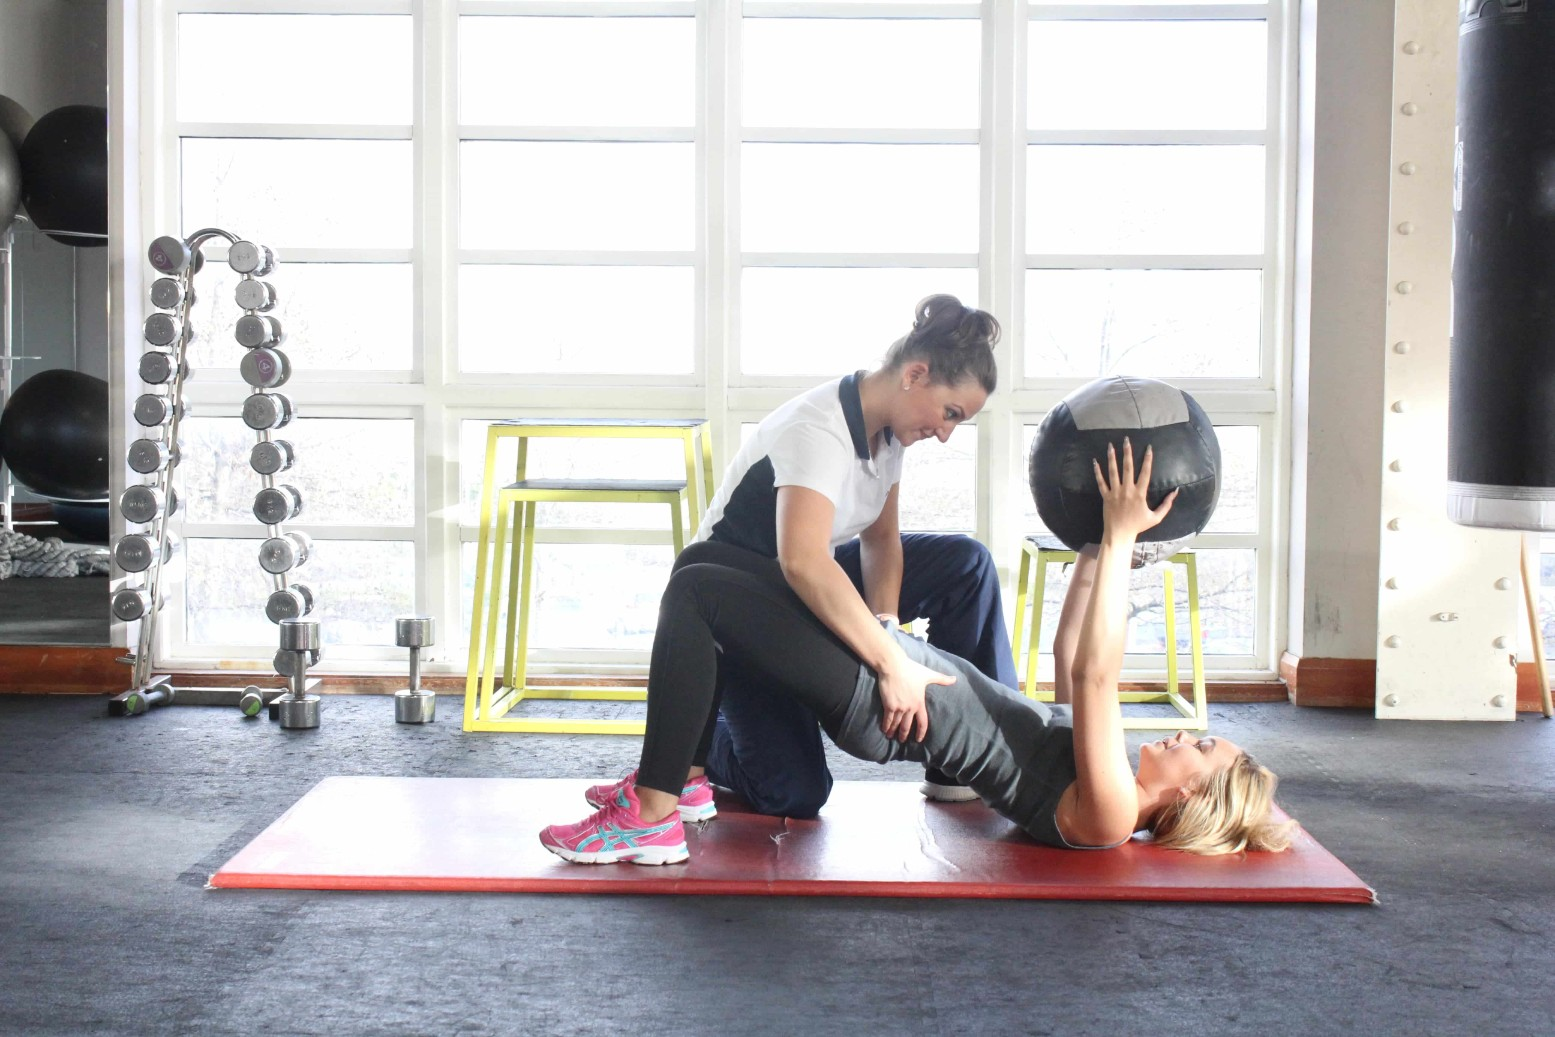 Personal training with Physio.co.uk